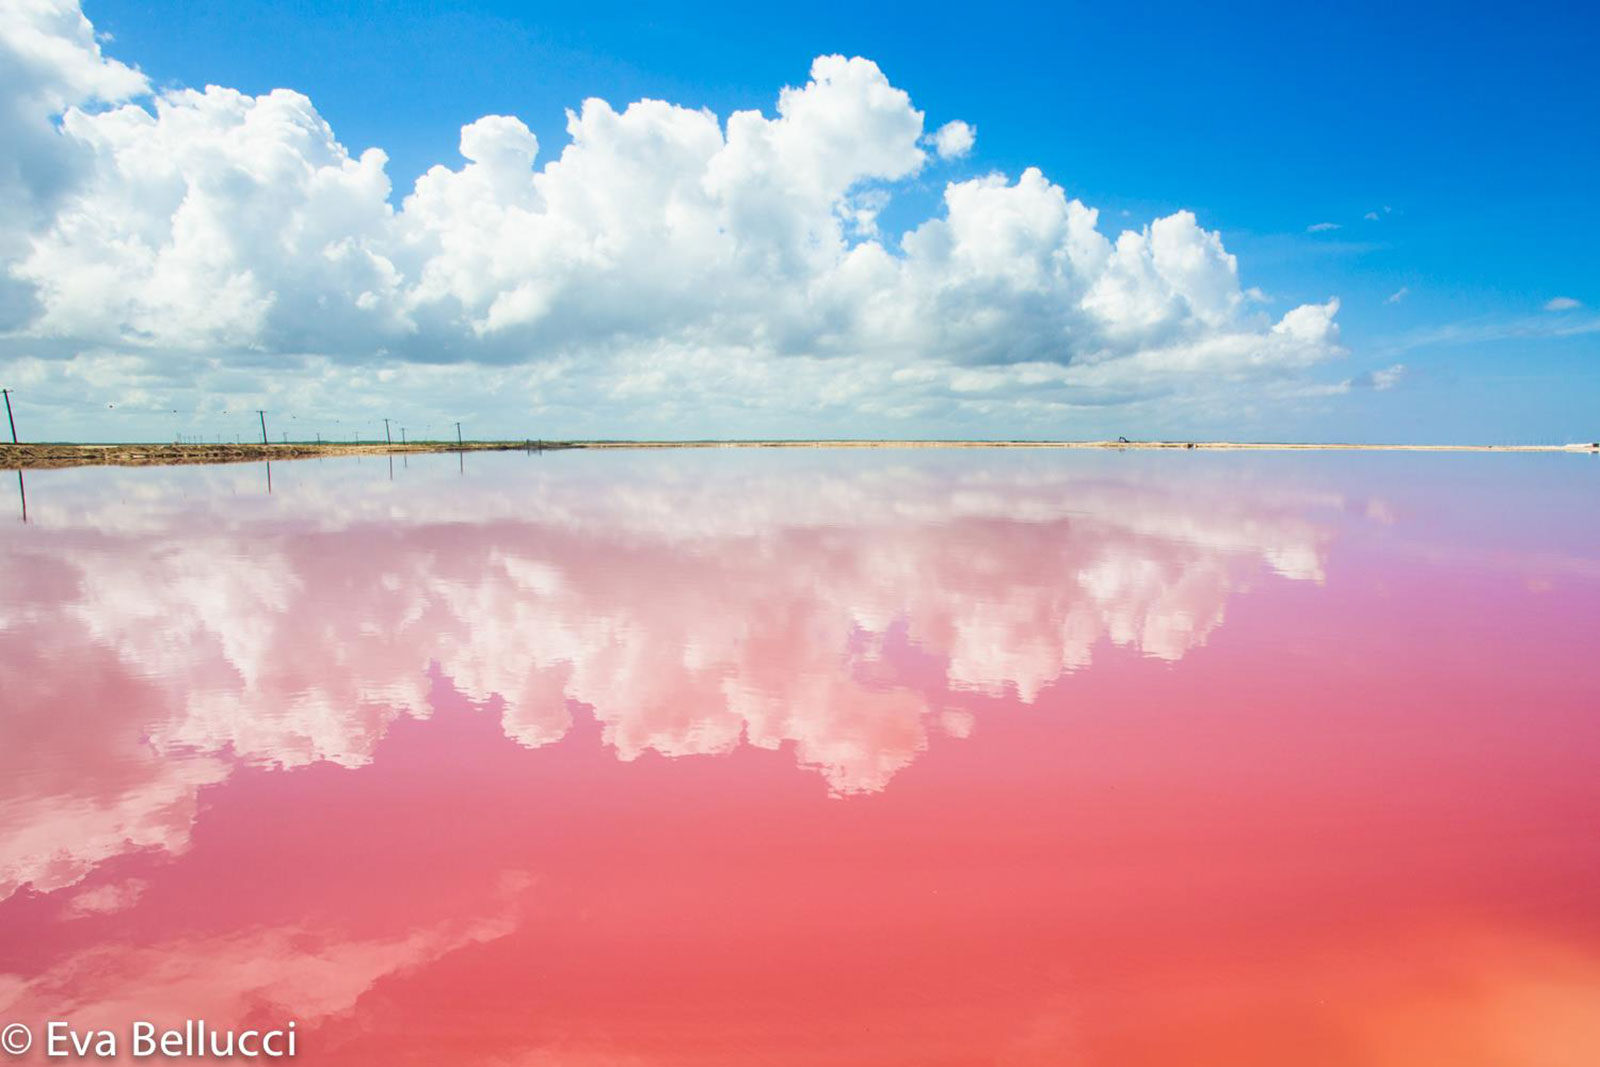 Maya_Luxe_Magazine_What_To_Do_Riviera_Maya_Mexico_Pink_Lakes_of_Yucatan_1.jpg